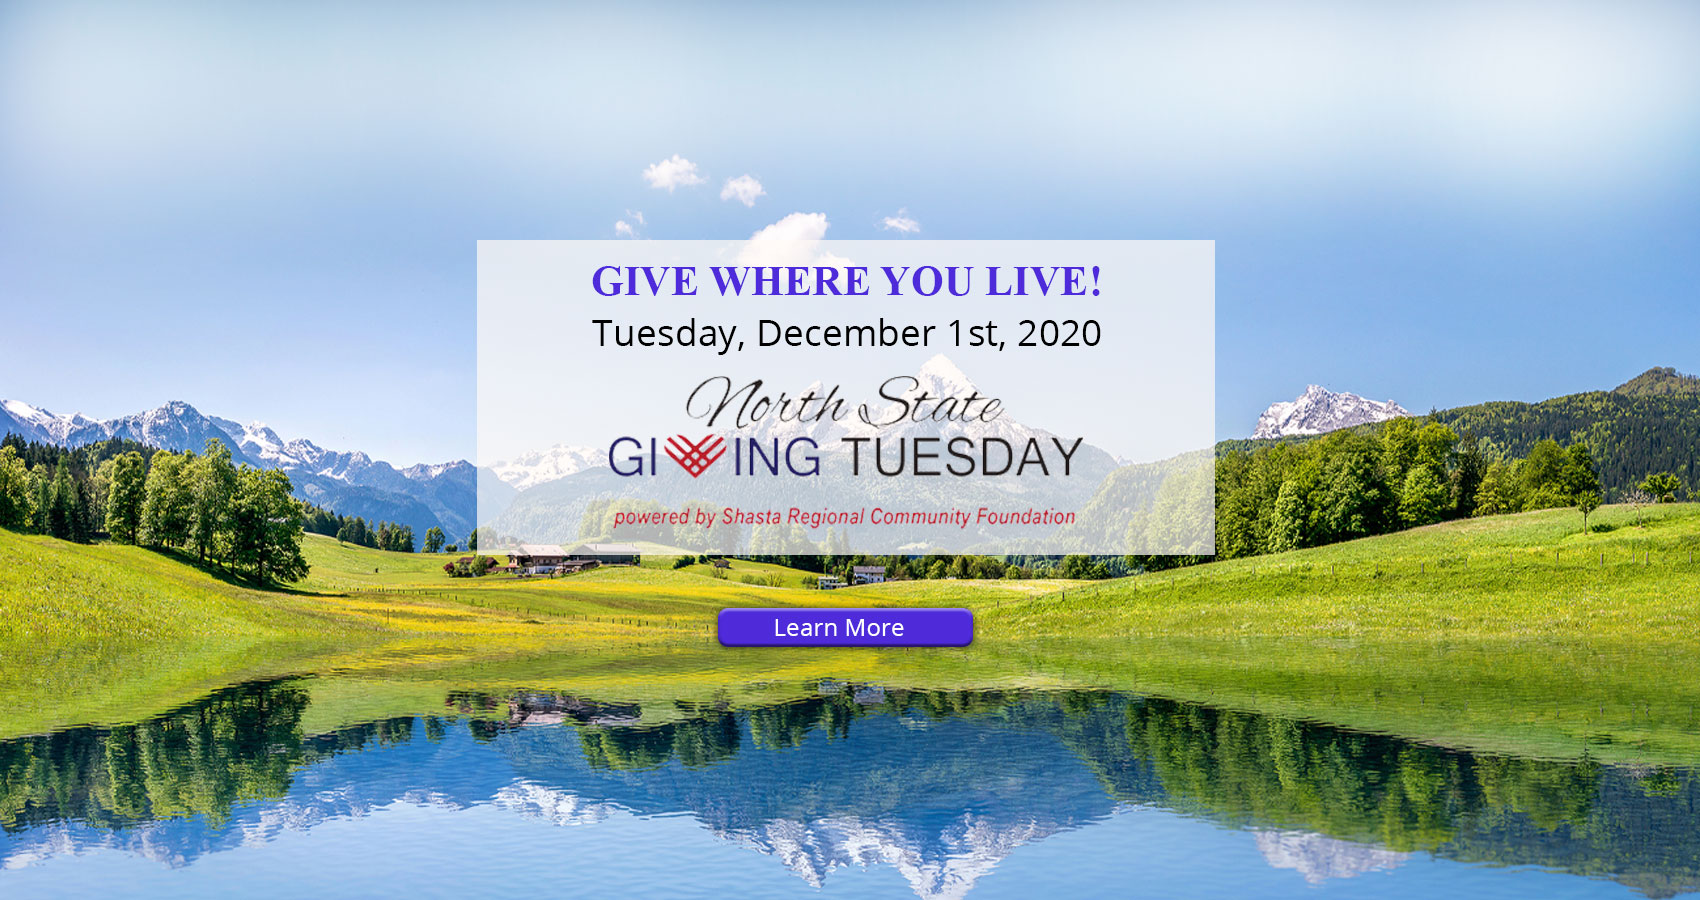 Give Where You Live! Tuesday December 1st, 2020. North State Giving Tuesday, powered by Shasta Regional Community Foundation.